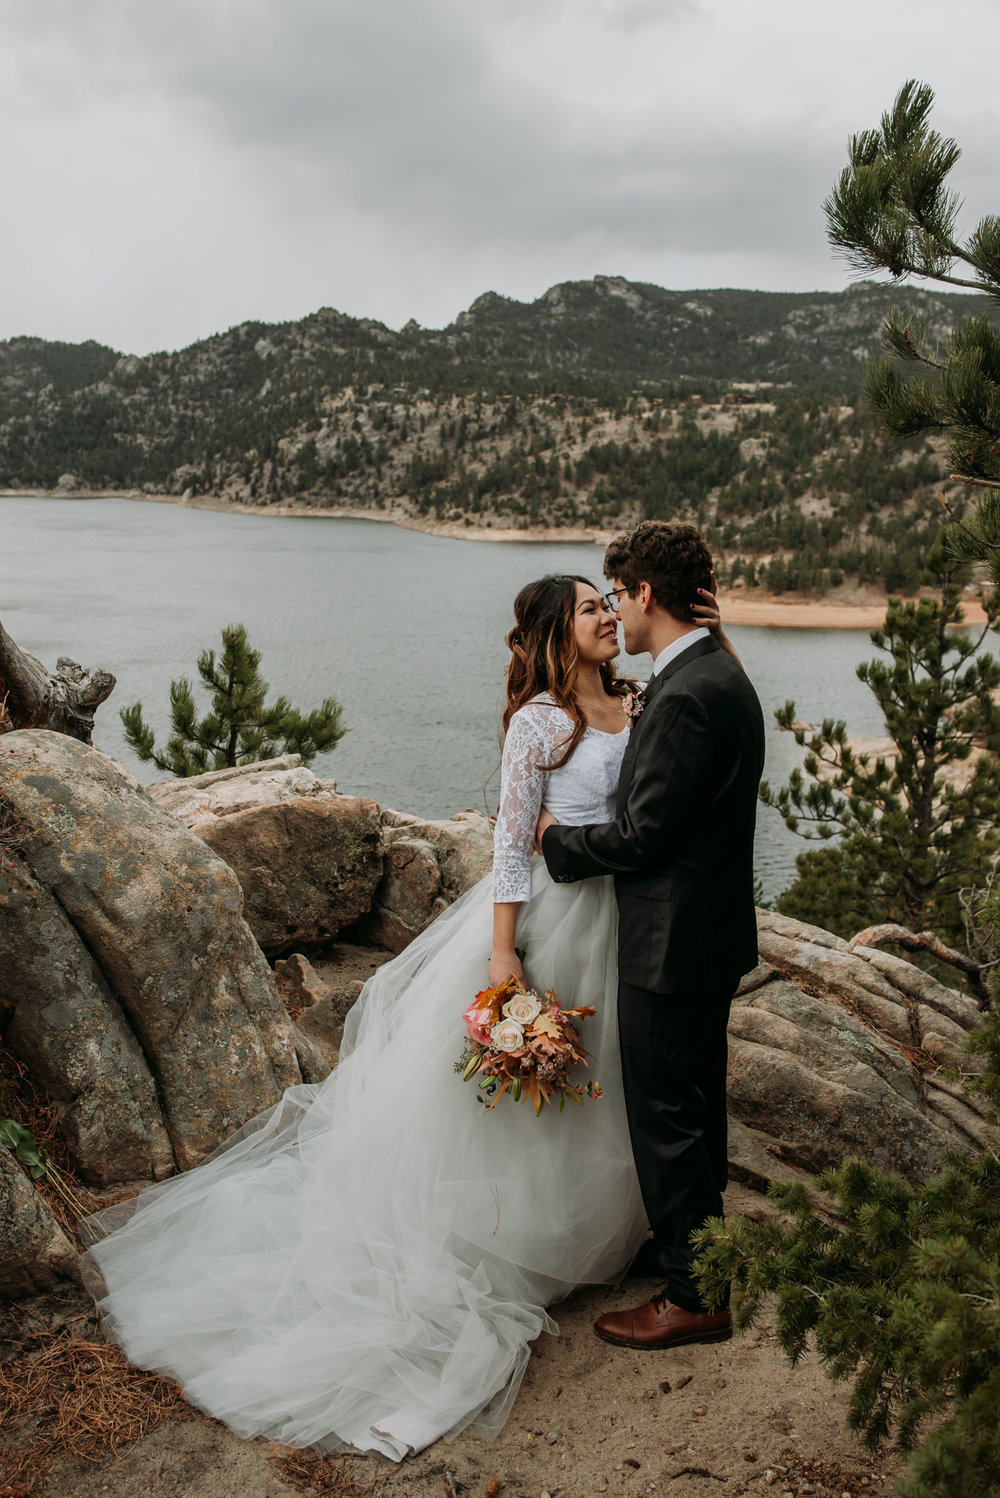 The wind in Colorado today was perfect for wedding photos.